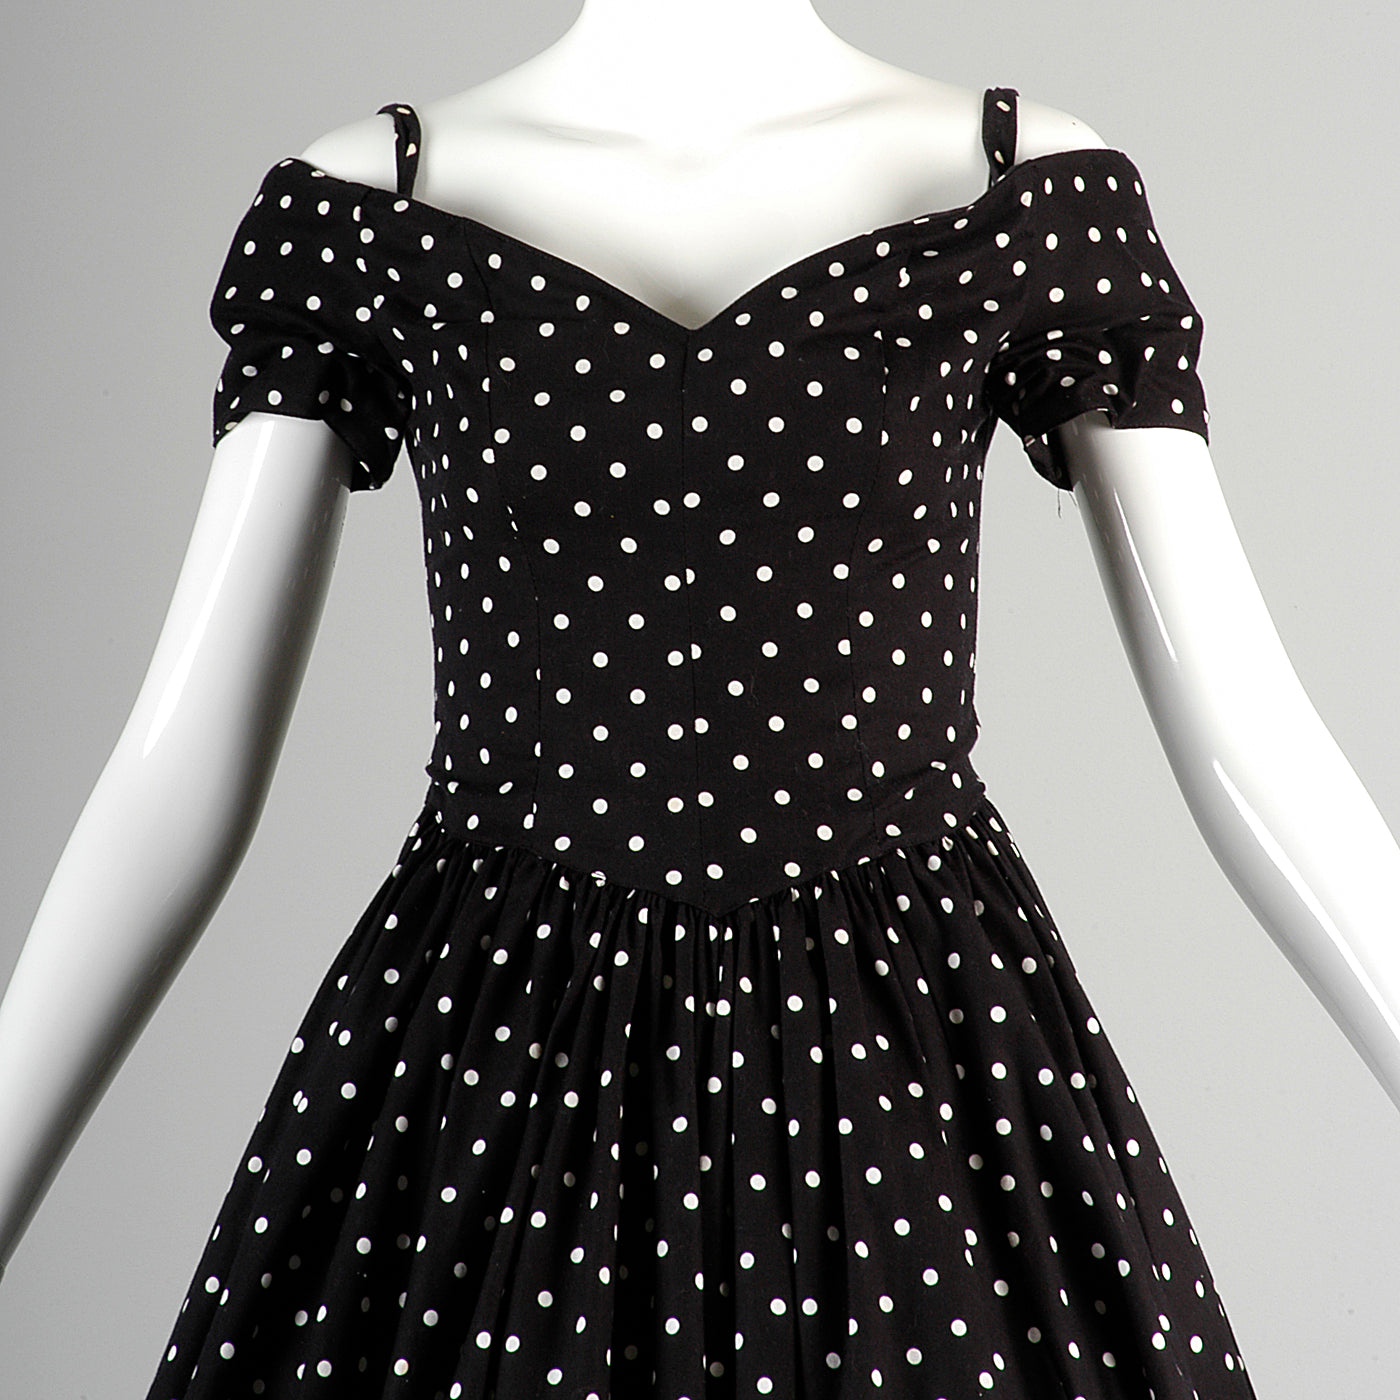 1980s I. Magnin Off Shoulder Party Dress in Black with White Polka Dots